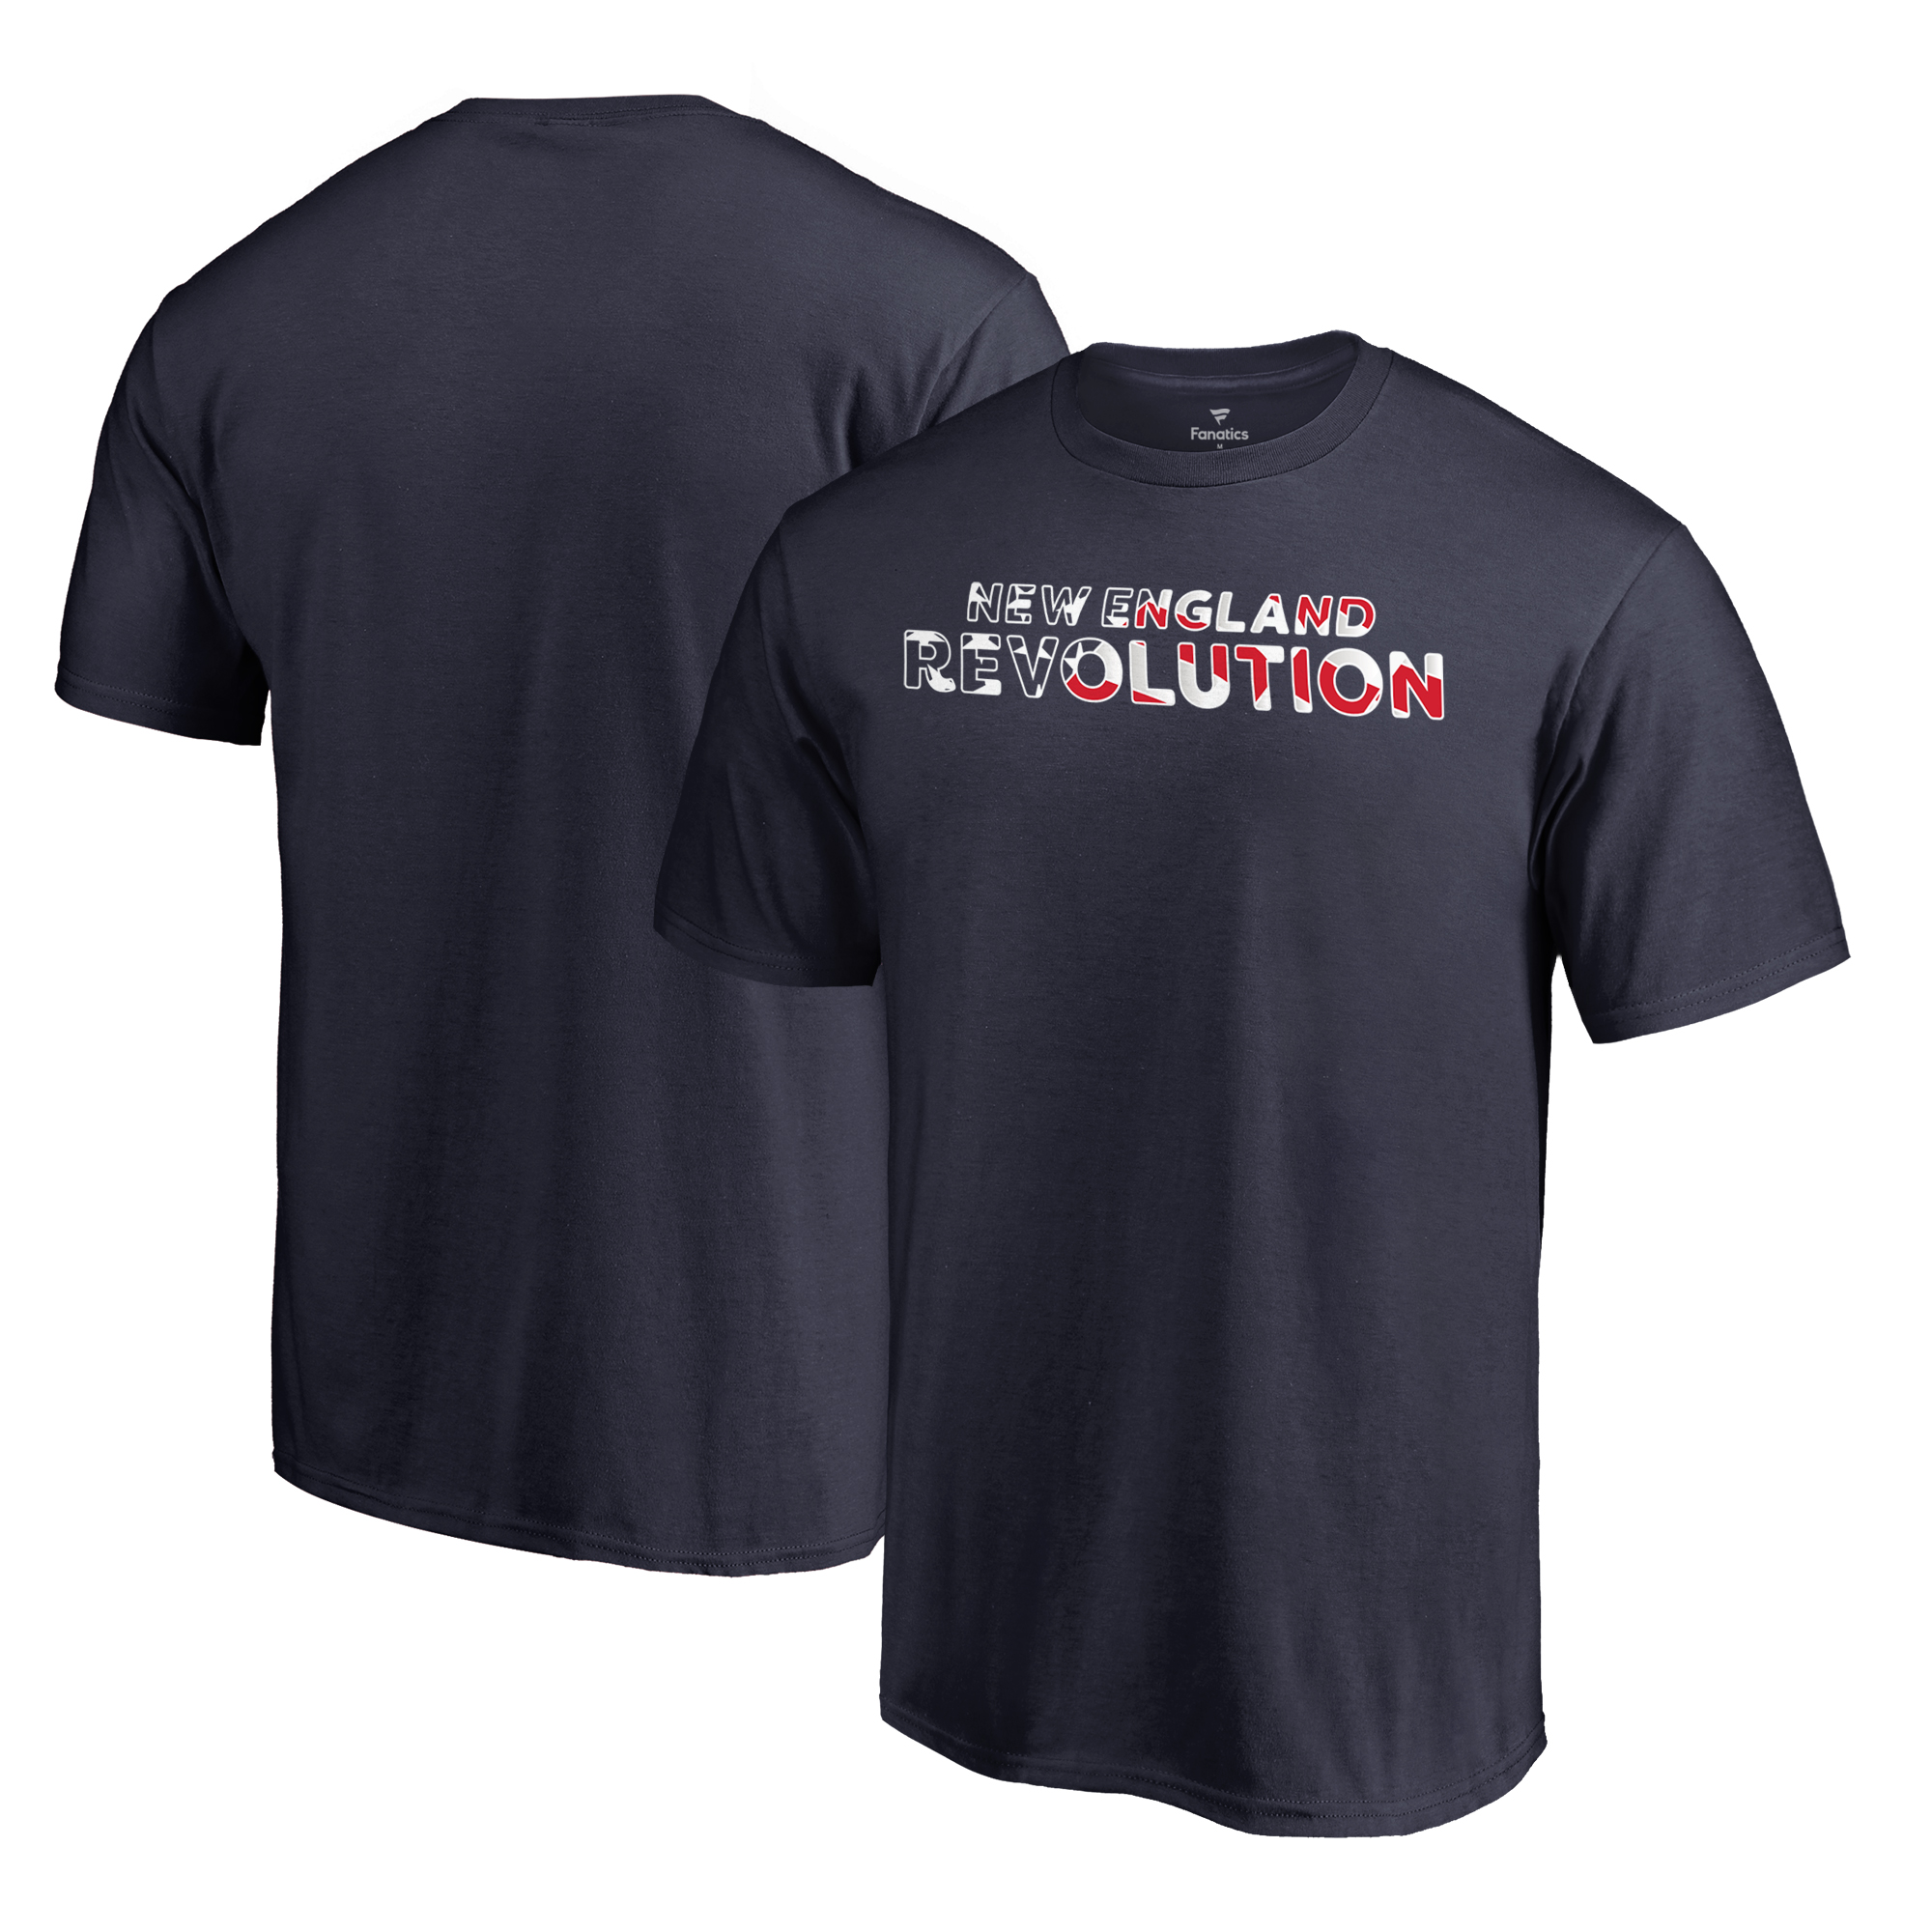 New England Revolution Fanatics Branded Club and Country T-Shirt - Navy